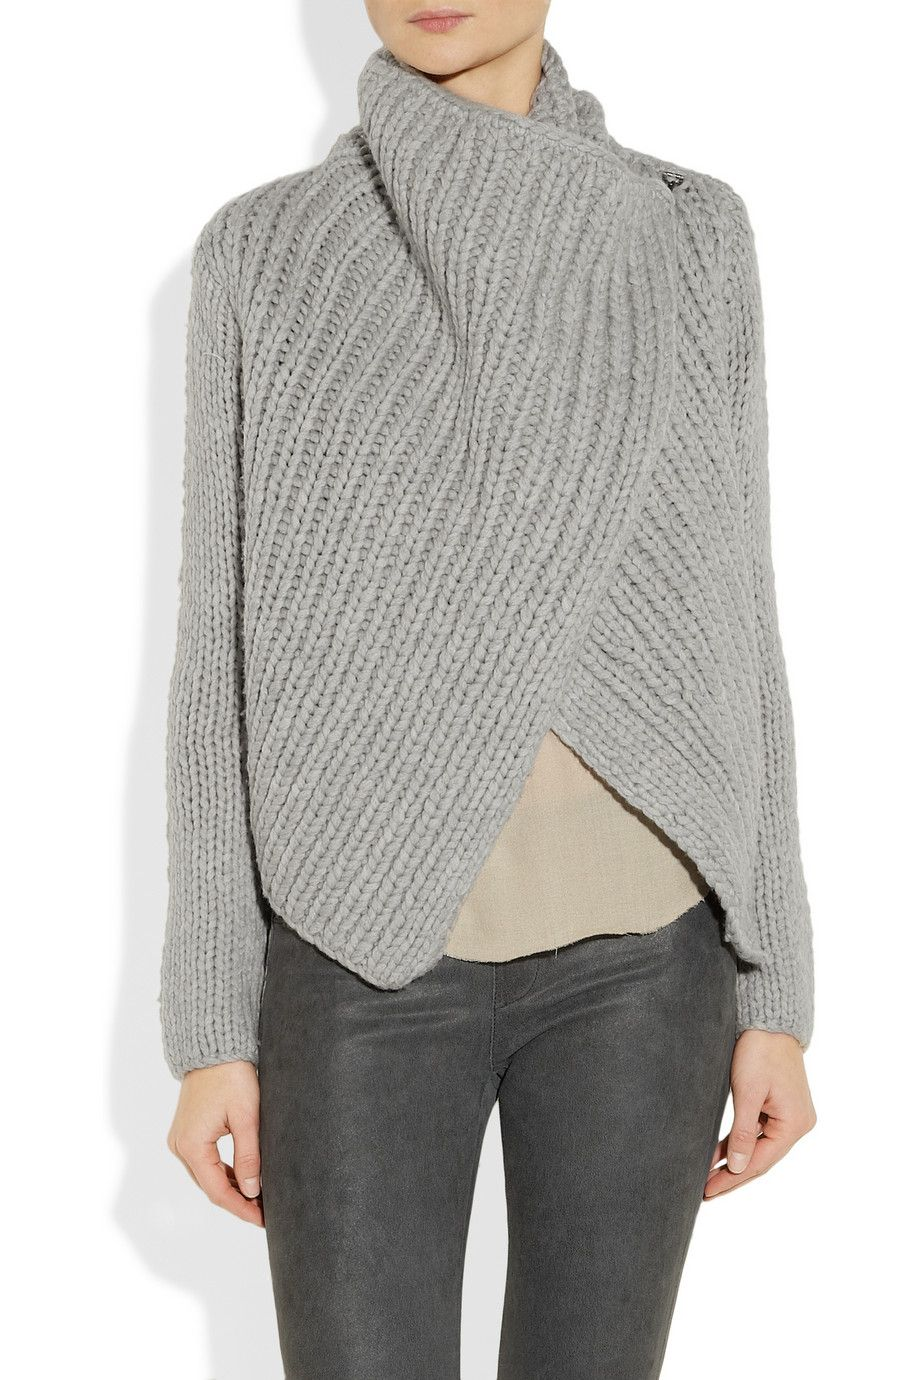 Sweater Knit : Helmut lang bulky rib knit sweater love the easy wrap